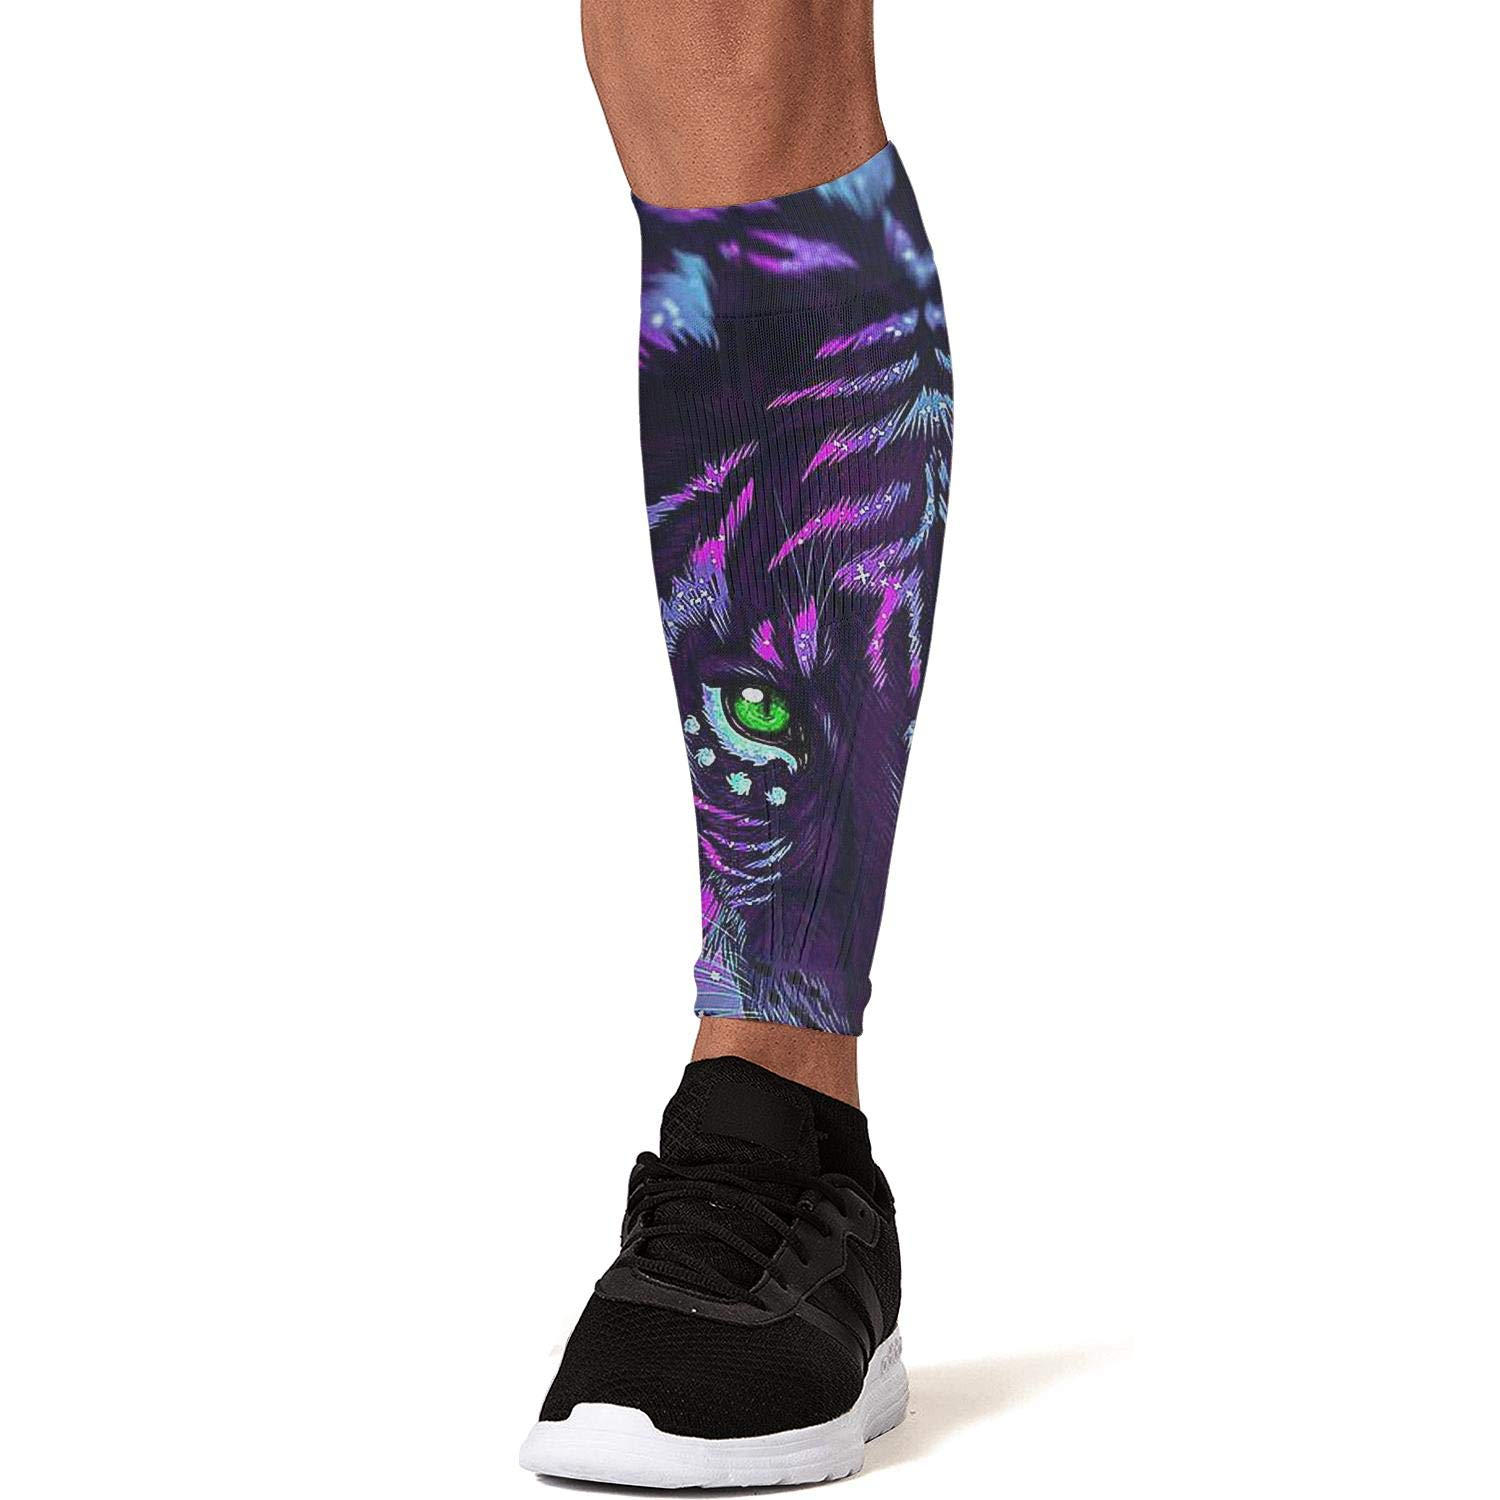 Smilelolly Psychedelic Black tiger Calf Compression Sleeves Helps Pain Relief Leg Sleeves for Men Women